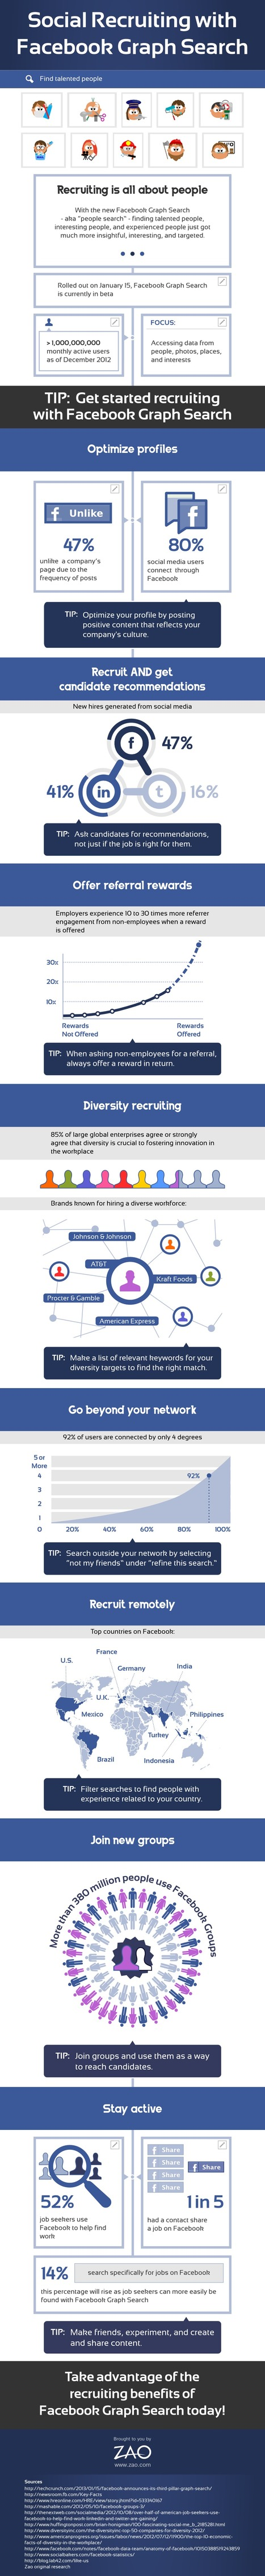 Infographic: How to Use Facebook for Recruiting - SocialTimes   web digital strategy   Scoop.it